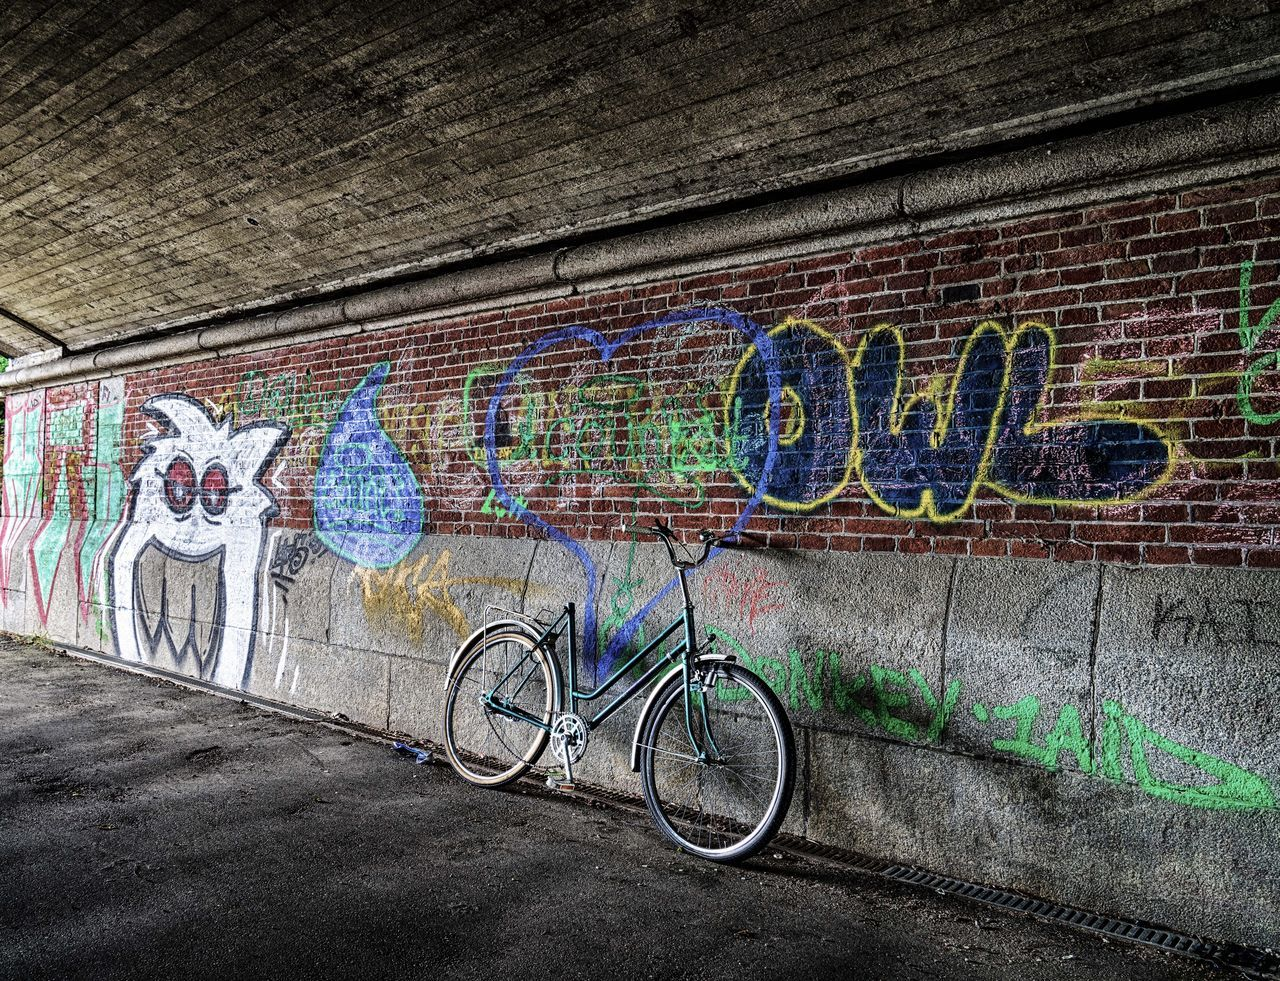 Saddle Stolen Architecture Art And Craft Bicycle Brick Wall Building Exterior Built Structure City Day Graffiti Left Multi Colored Neon Neon Color Neon Life Neon Lights No People Outdoors Spray Paint Stationary Street Art Transportation Wall - Building Feature